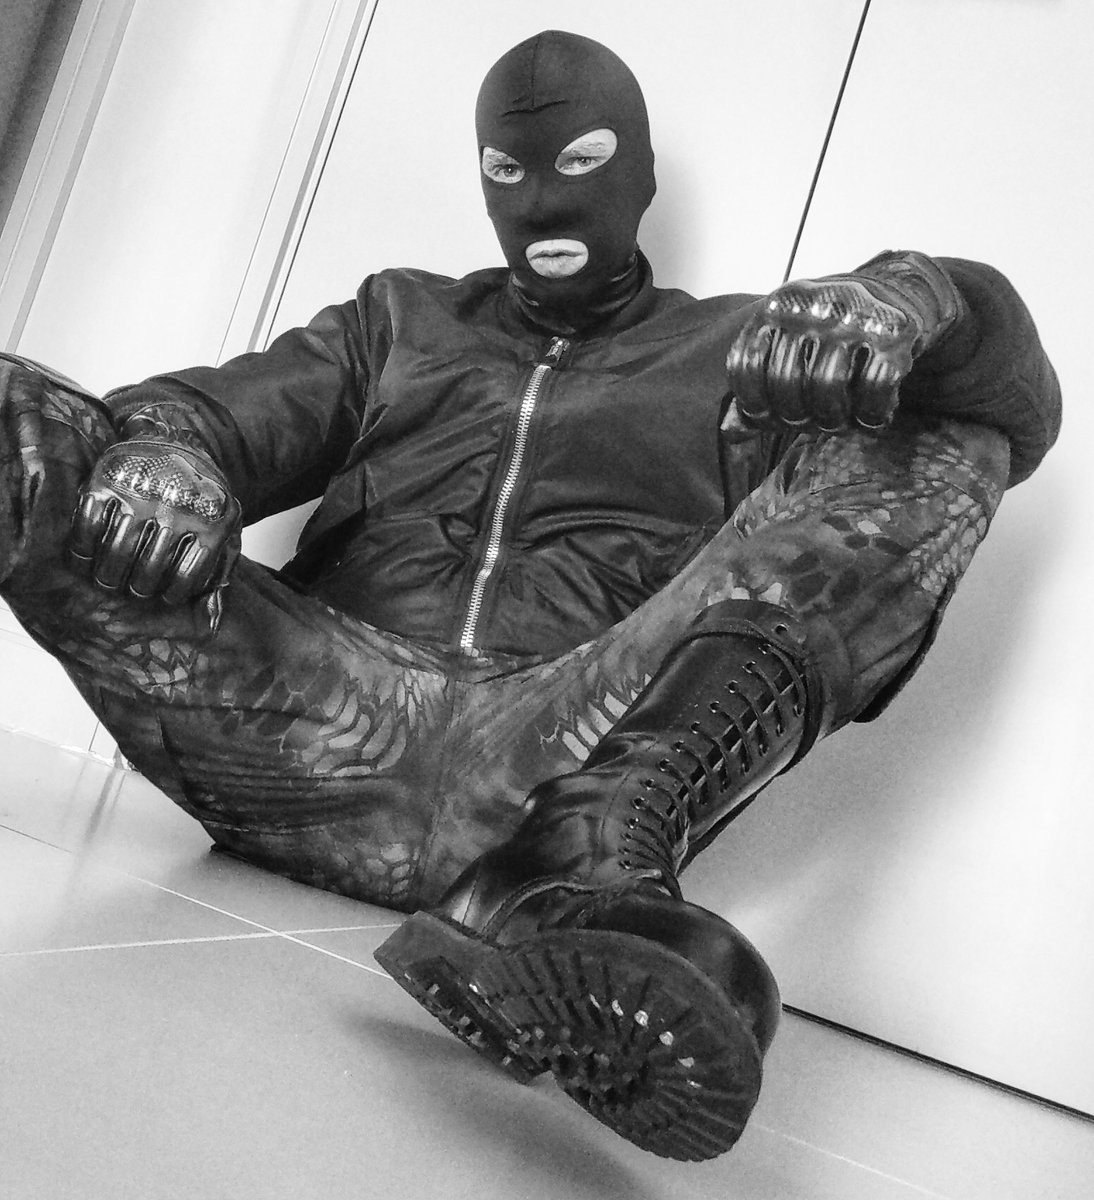 Boots, gloves and a balaclava. Sorted.